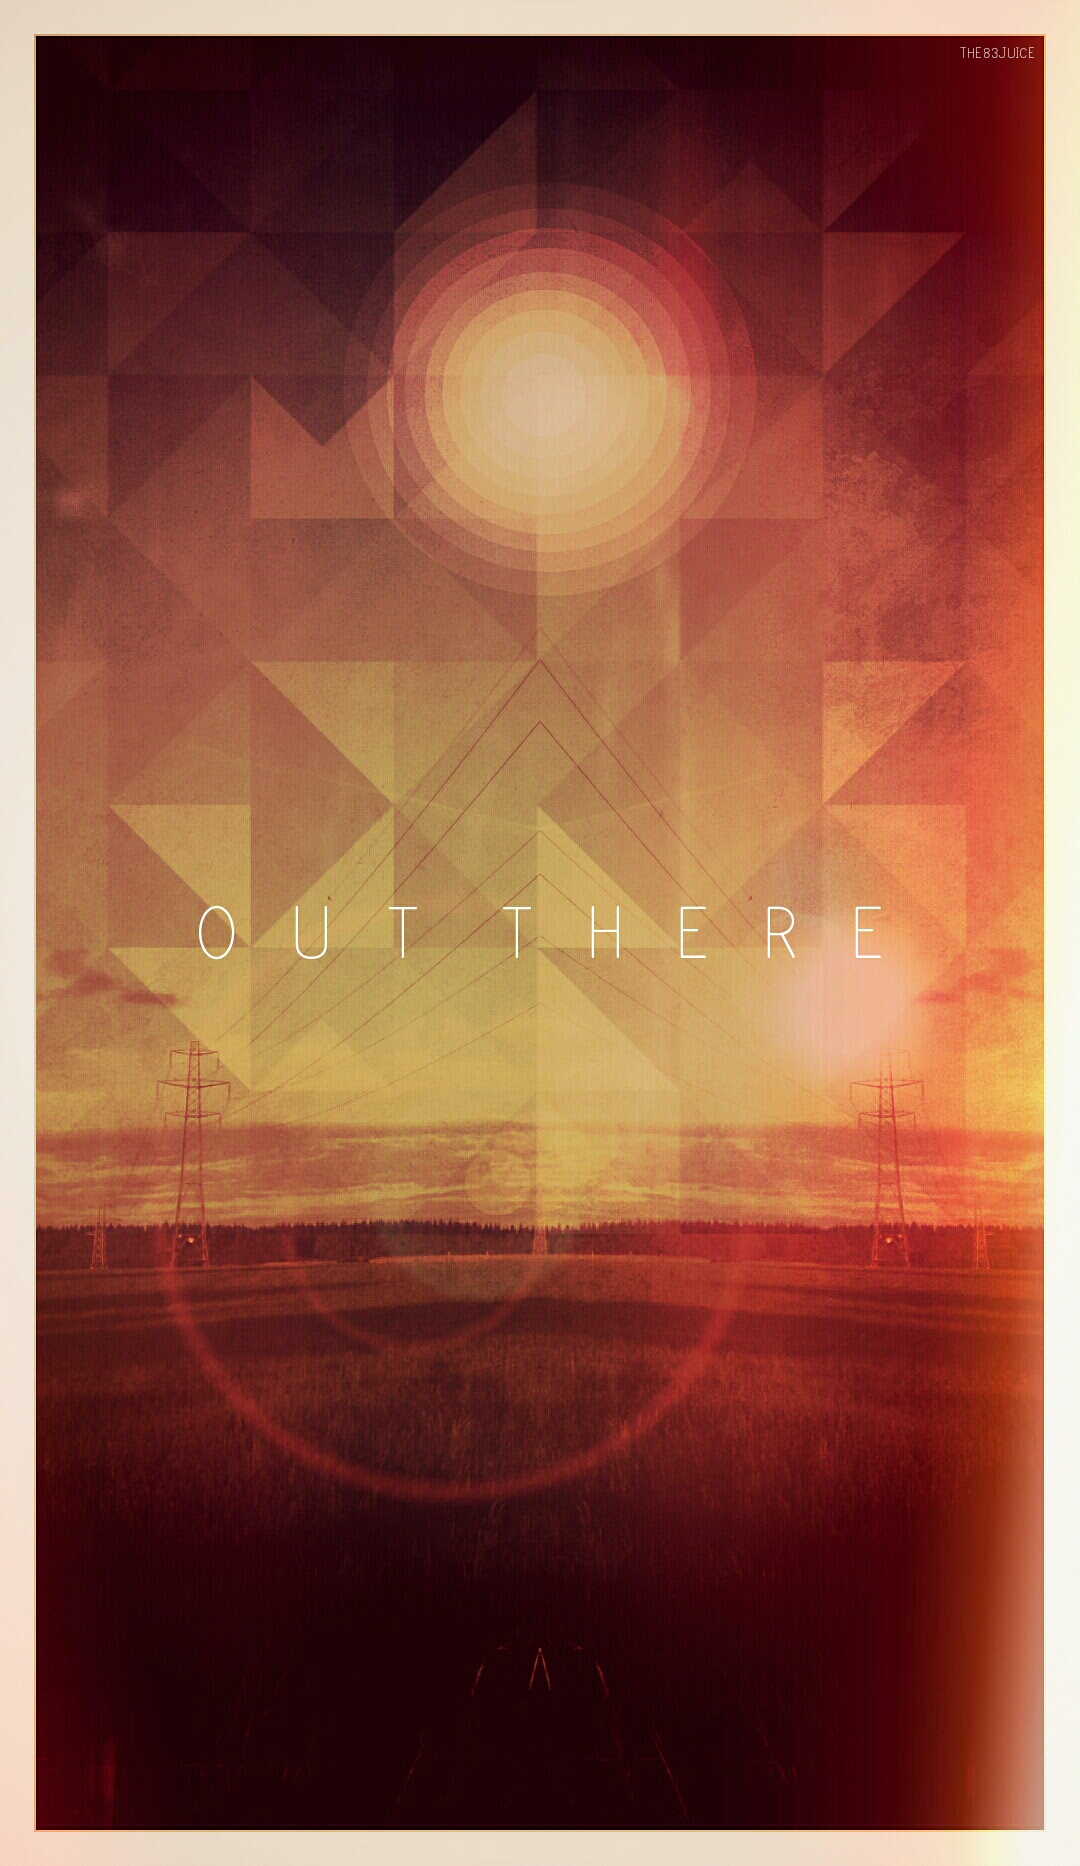 Out there #2